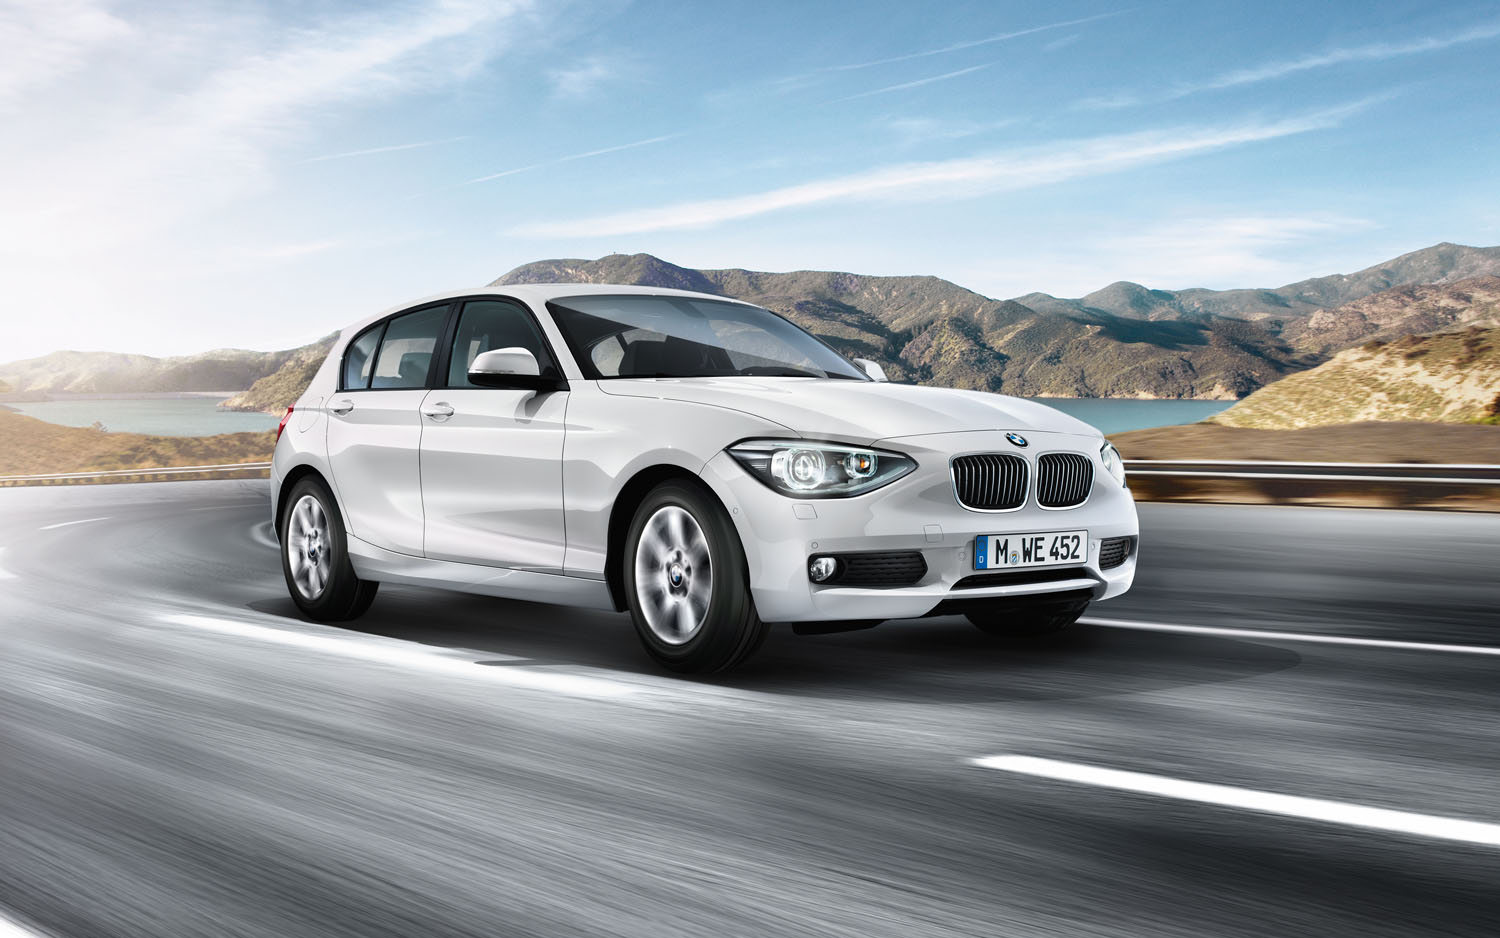 Bmw 1 Series Powerful, Dynamic And Sporty